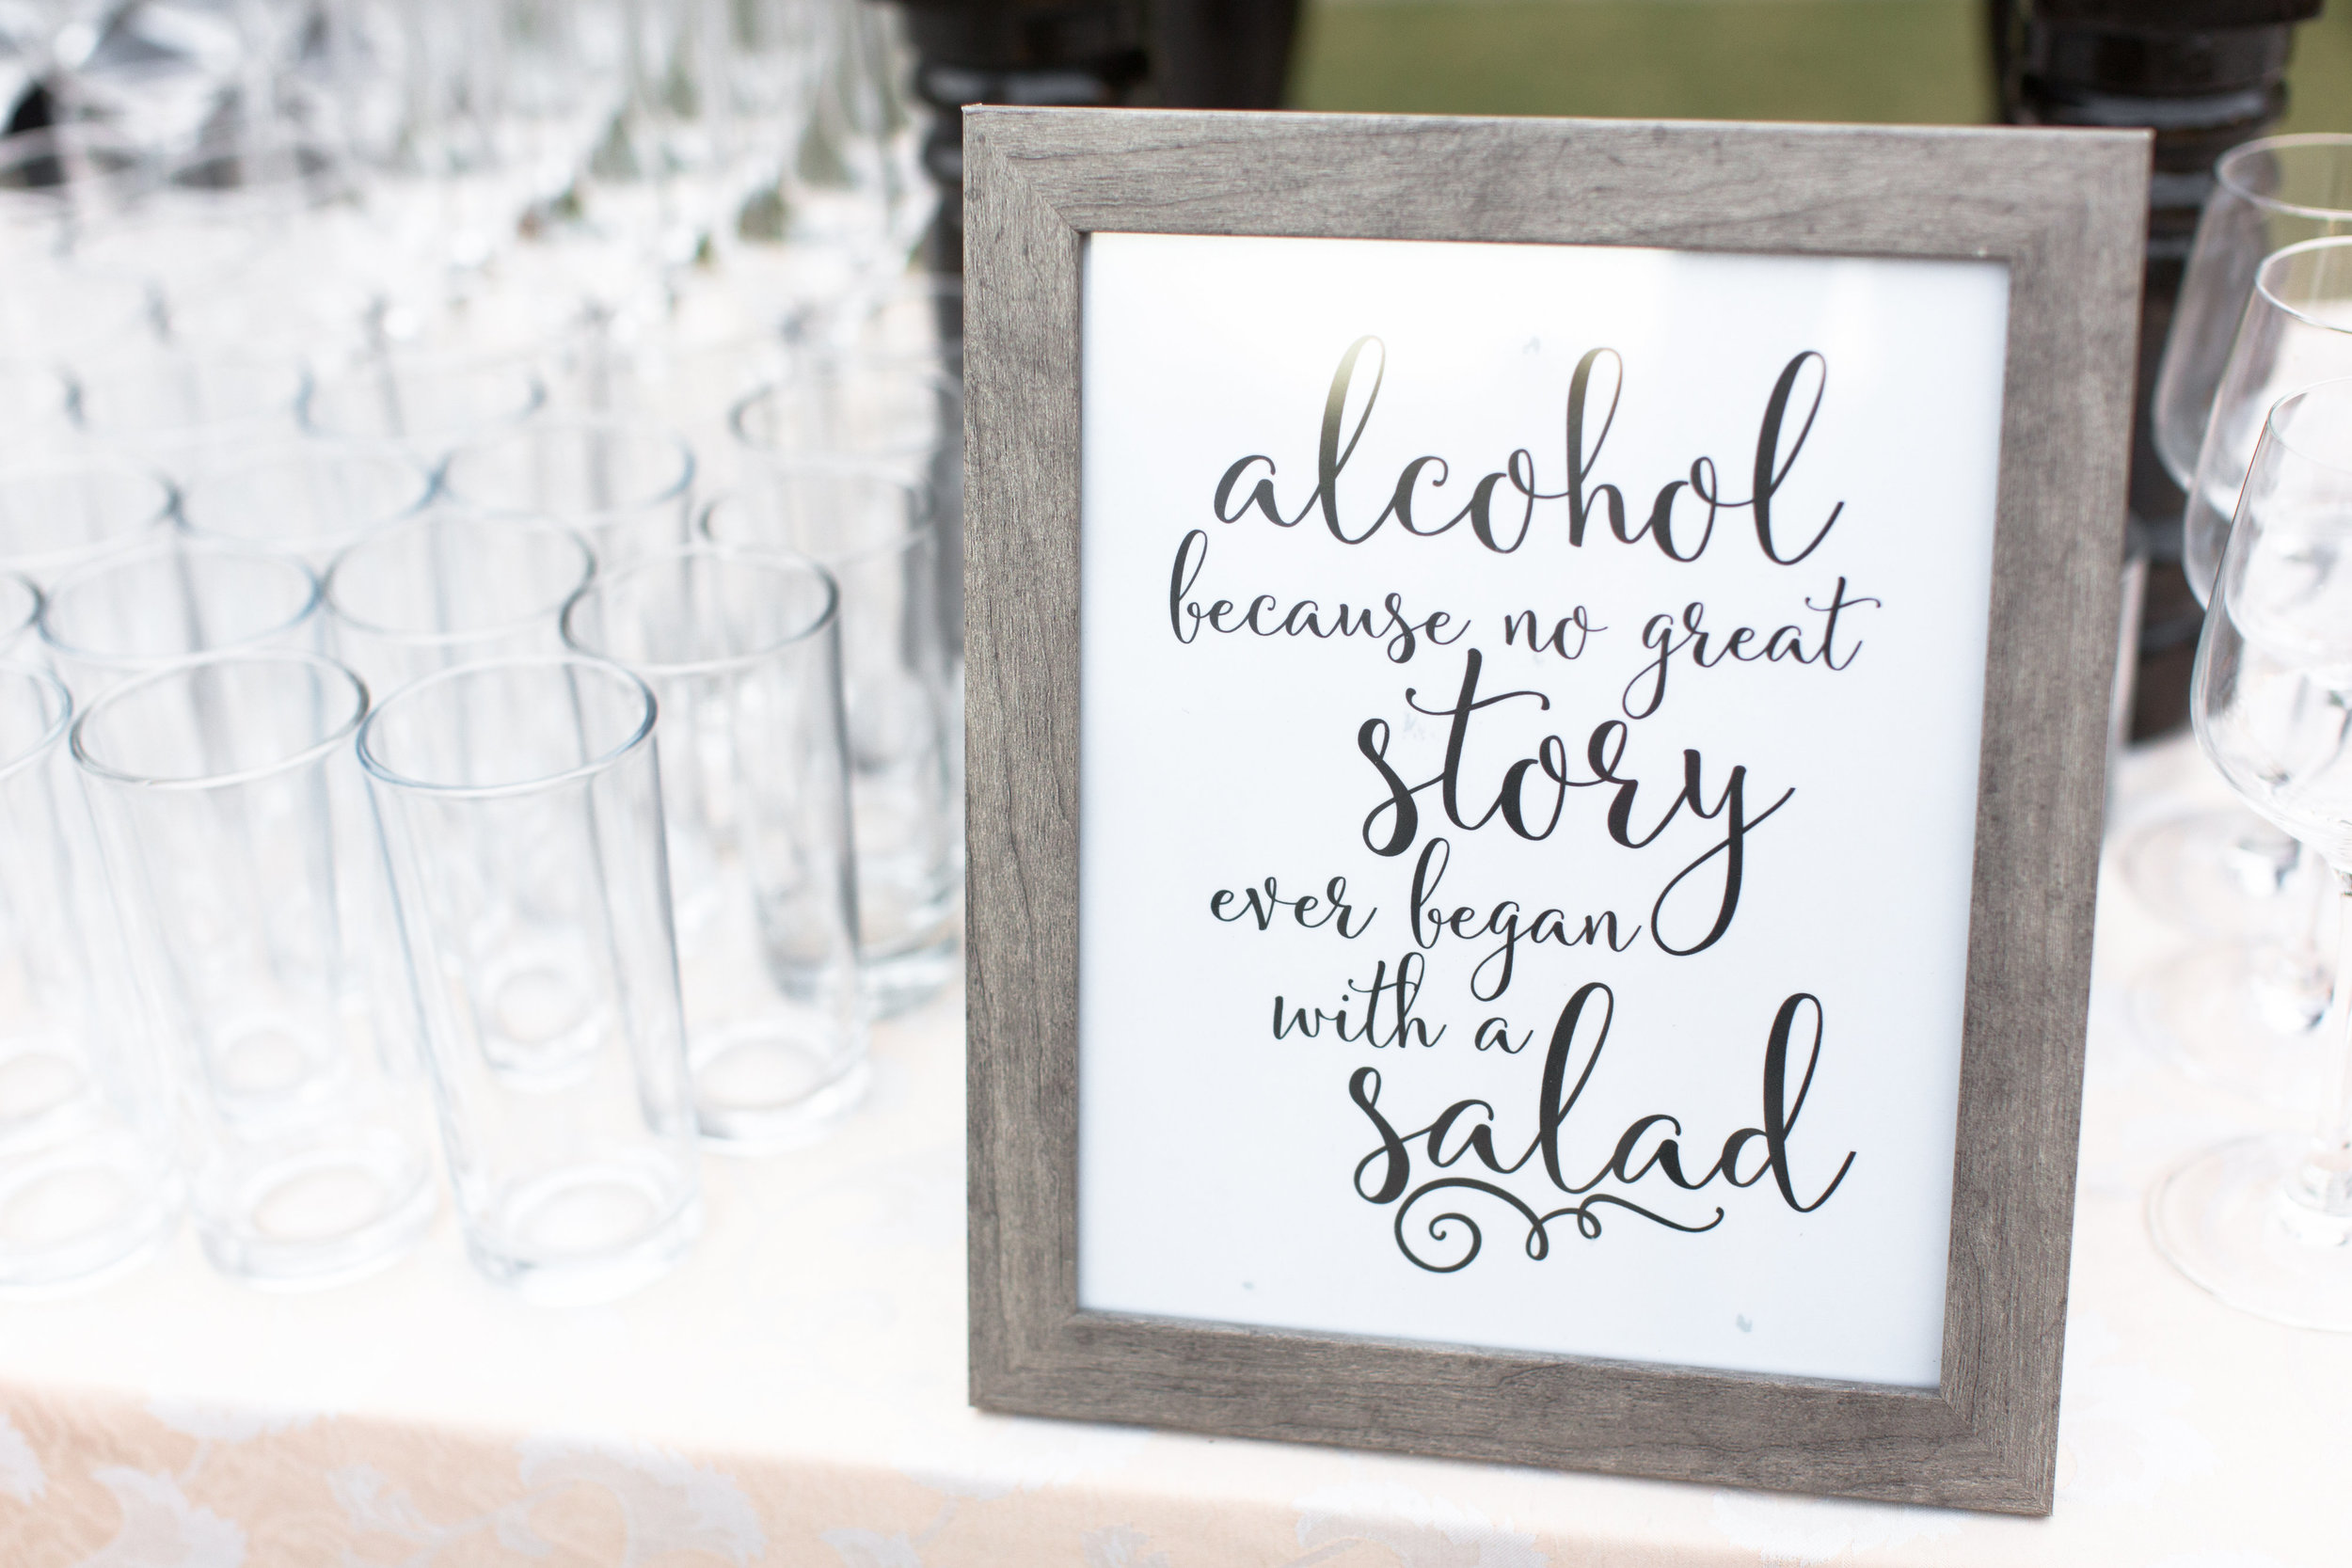 Phoenix-Scottsdale-Arizona-Wedding-Planner-Wedding-Venue-Destination-Wedding-Planner, Omni Montelucia weddings, sunset weddings, Arizona Sunset weddings, wedding details, wedding bar sign, signature drink sign